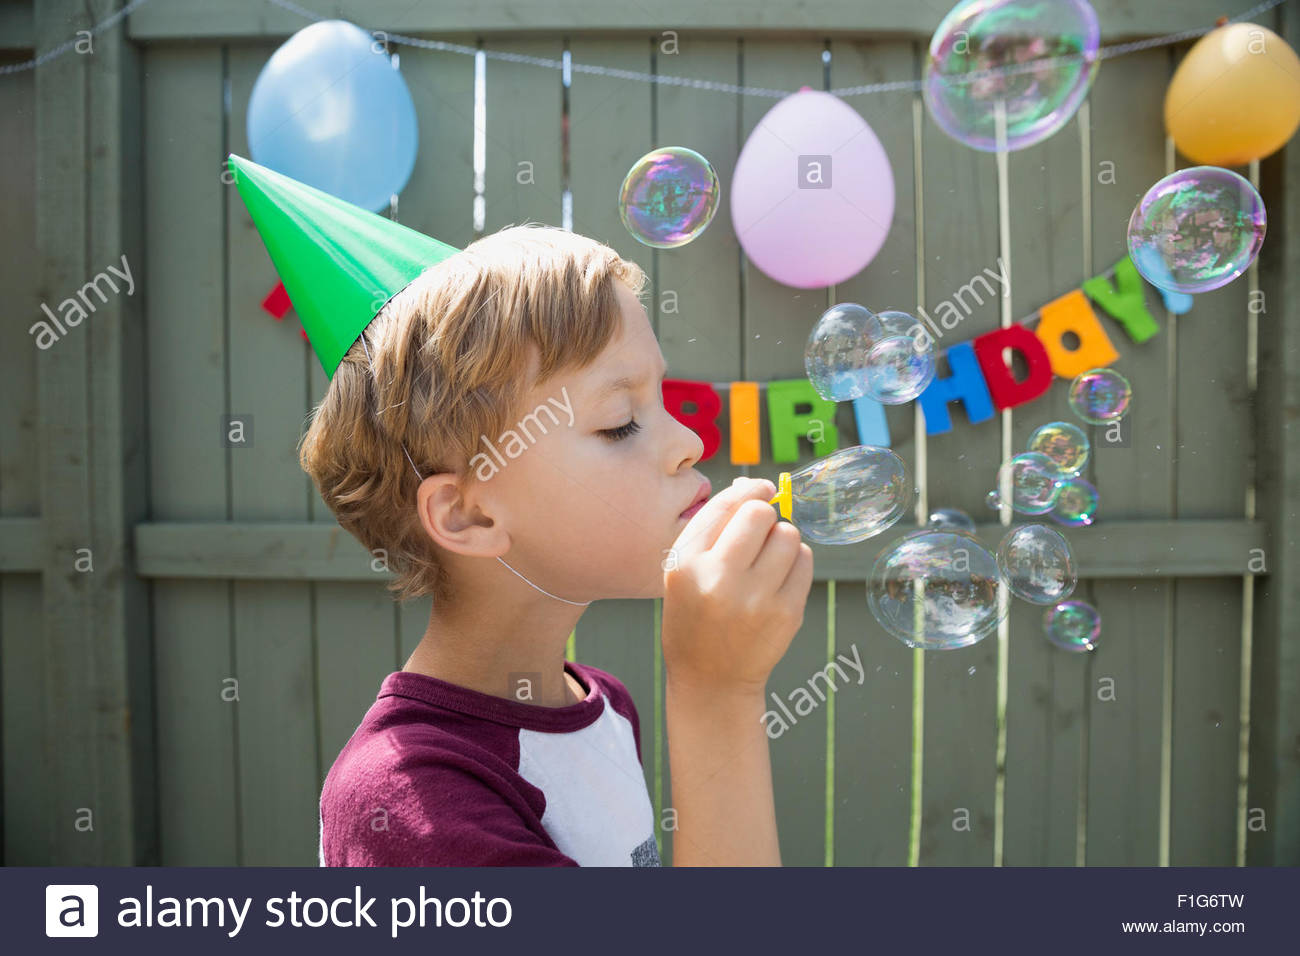 Boy wearing birthday party hat blowing bubbles - Stock Image